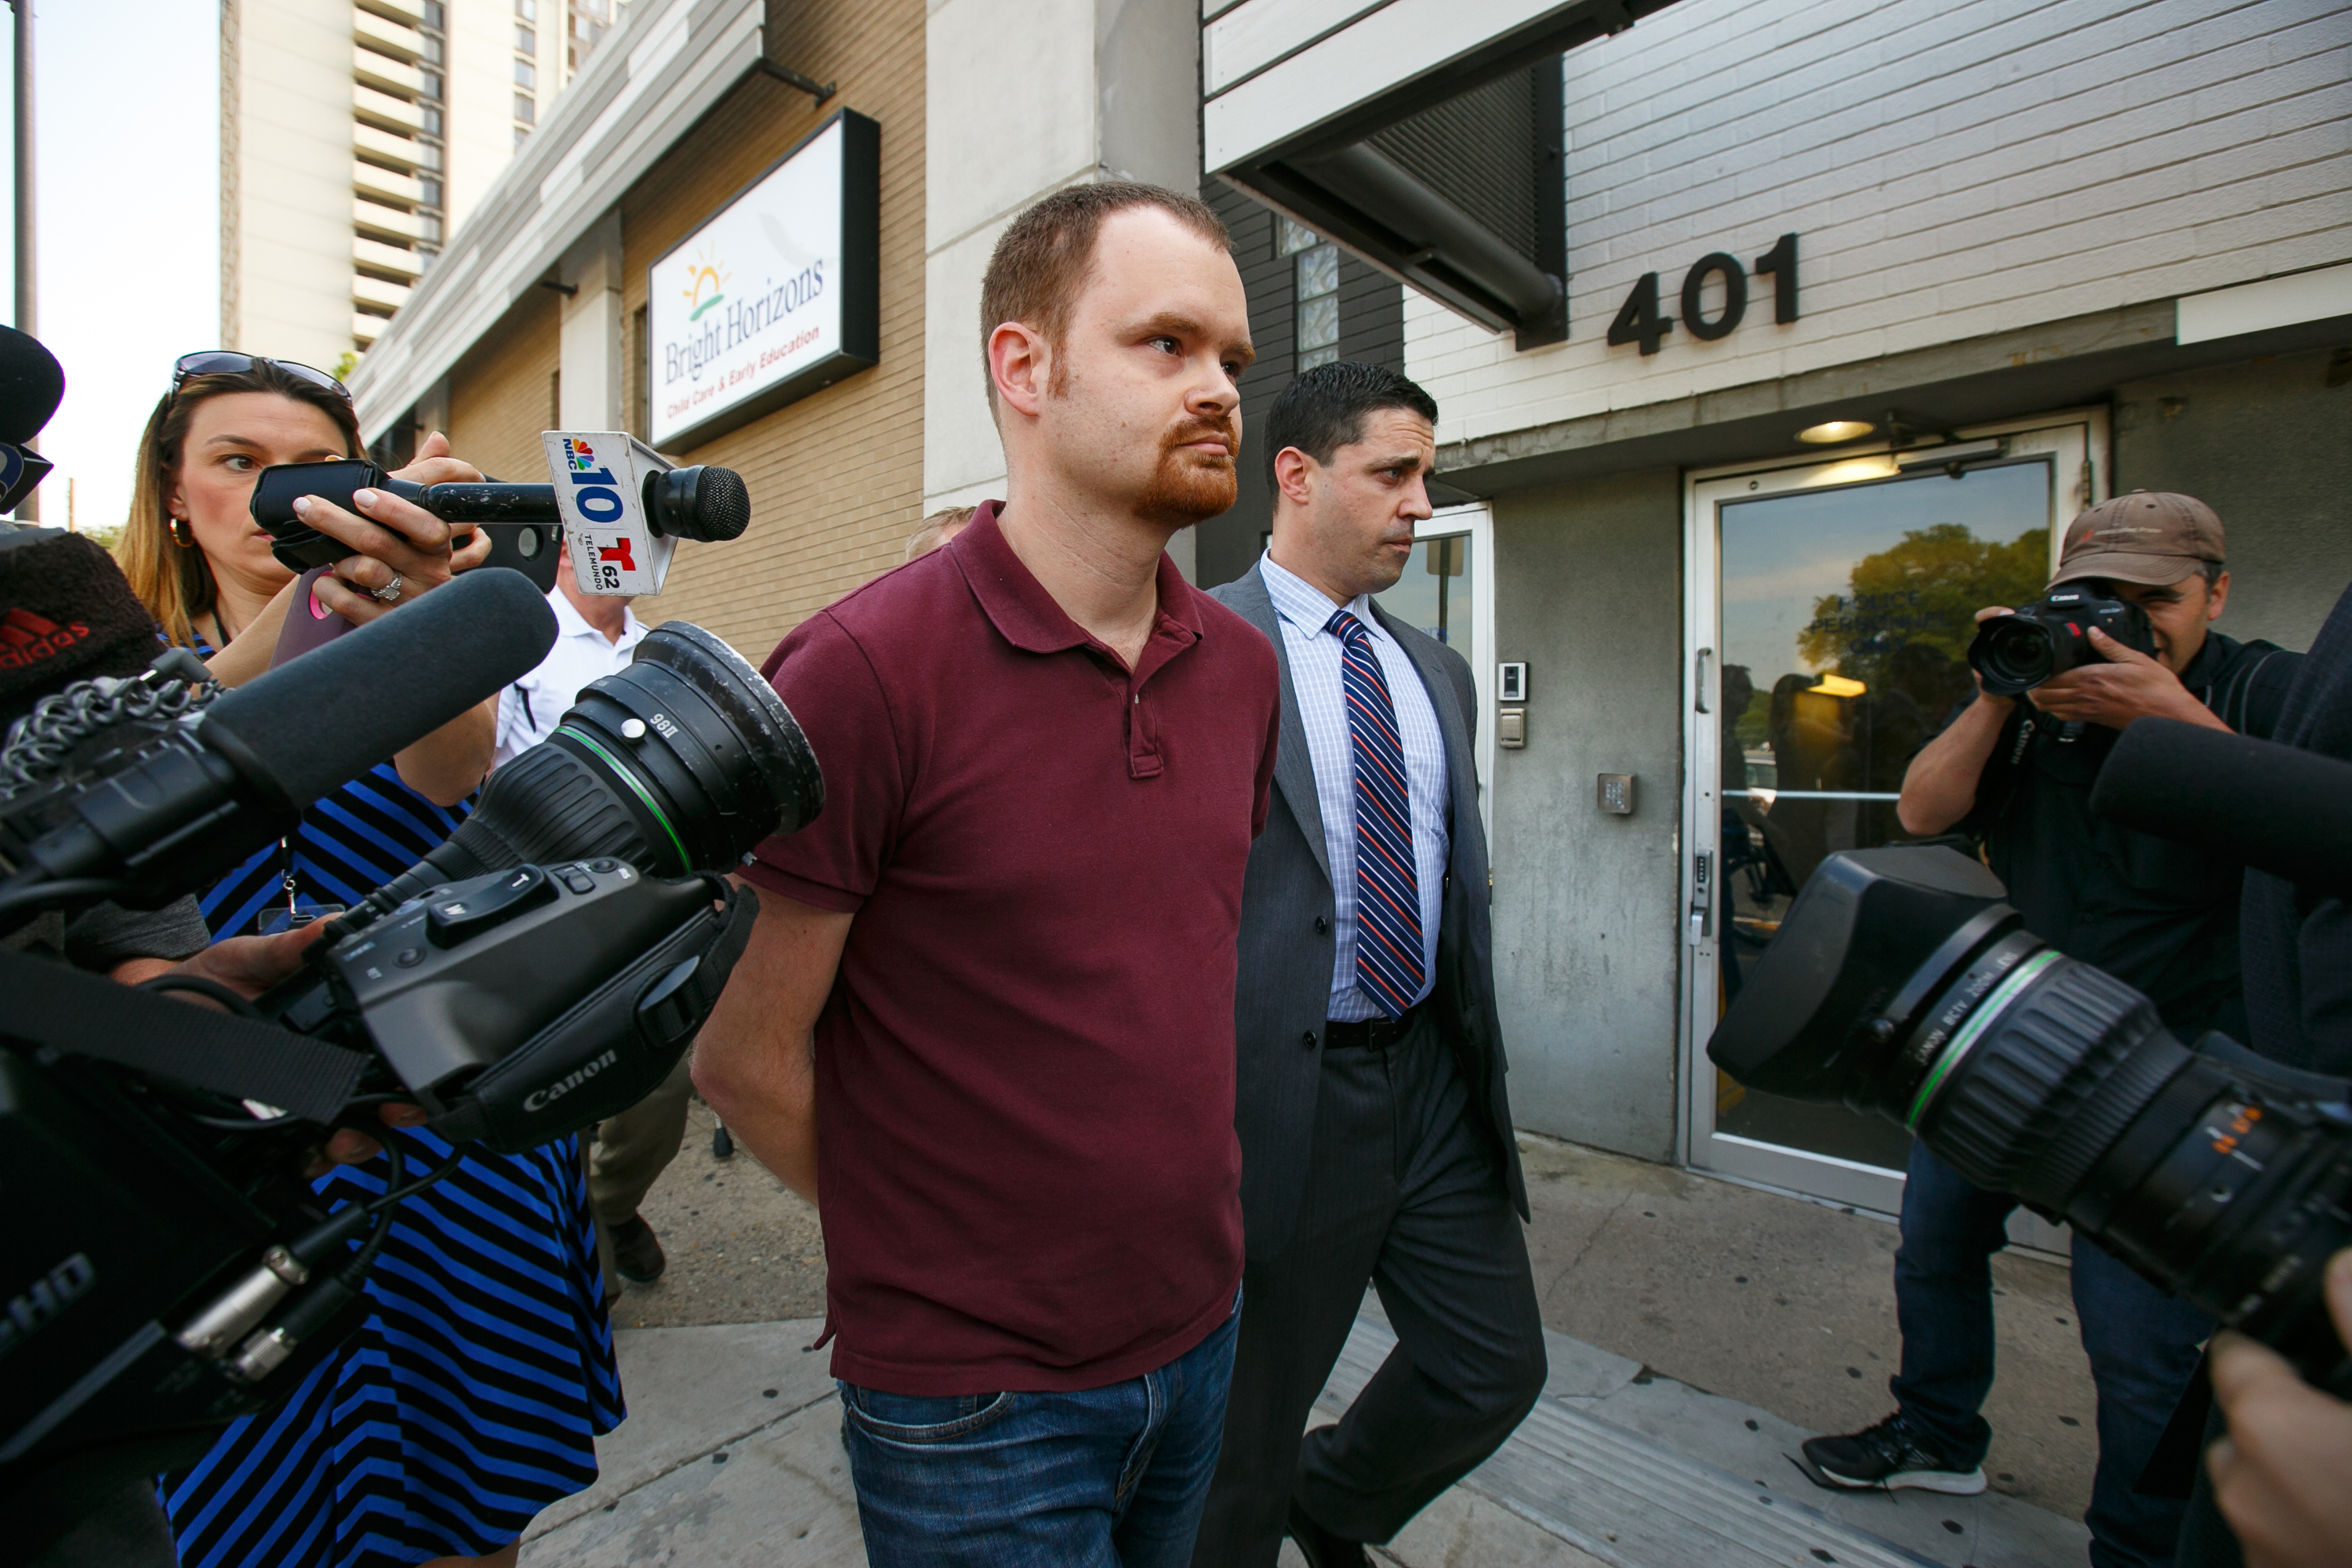 Brandon Bostian, center, the Amtrak engineer, turns himself in to the 9th district police station in Philadelphia.